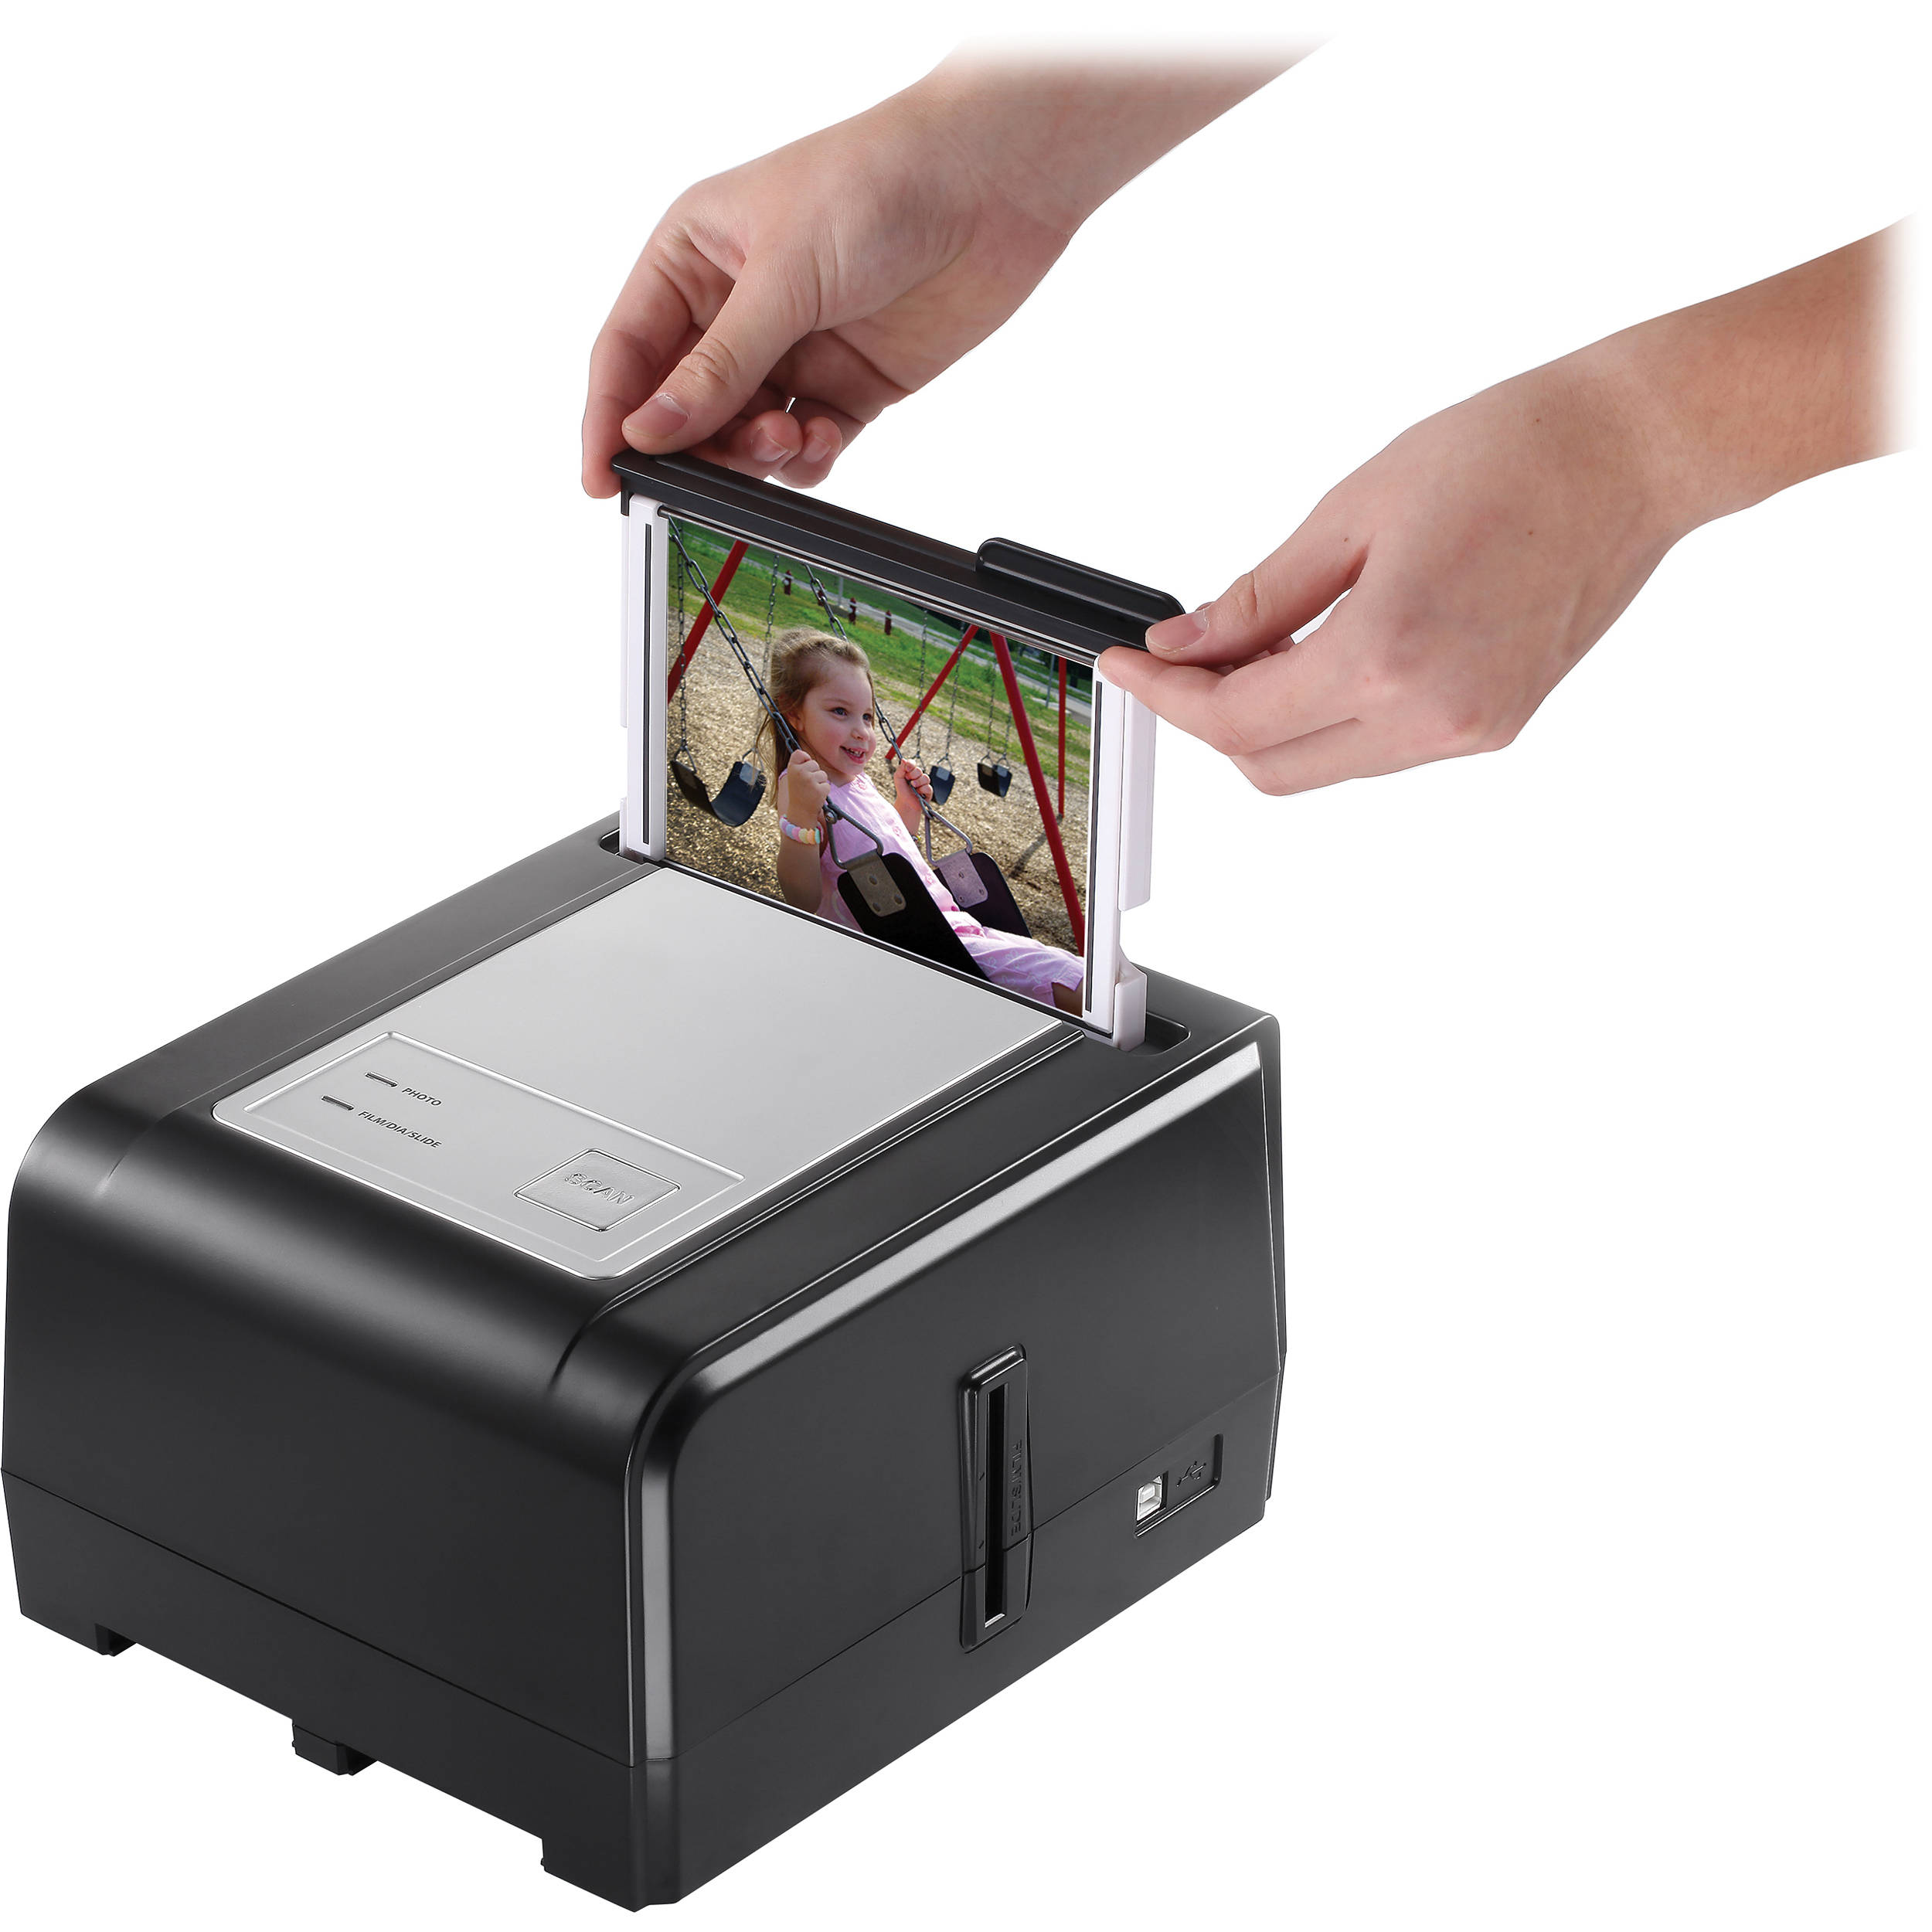 CYBERVIEW SCANNER DRIVER FREE